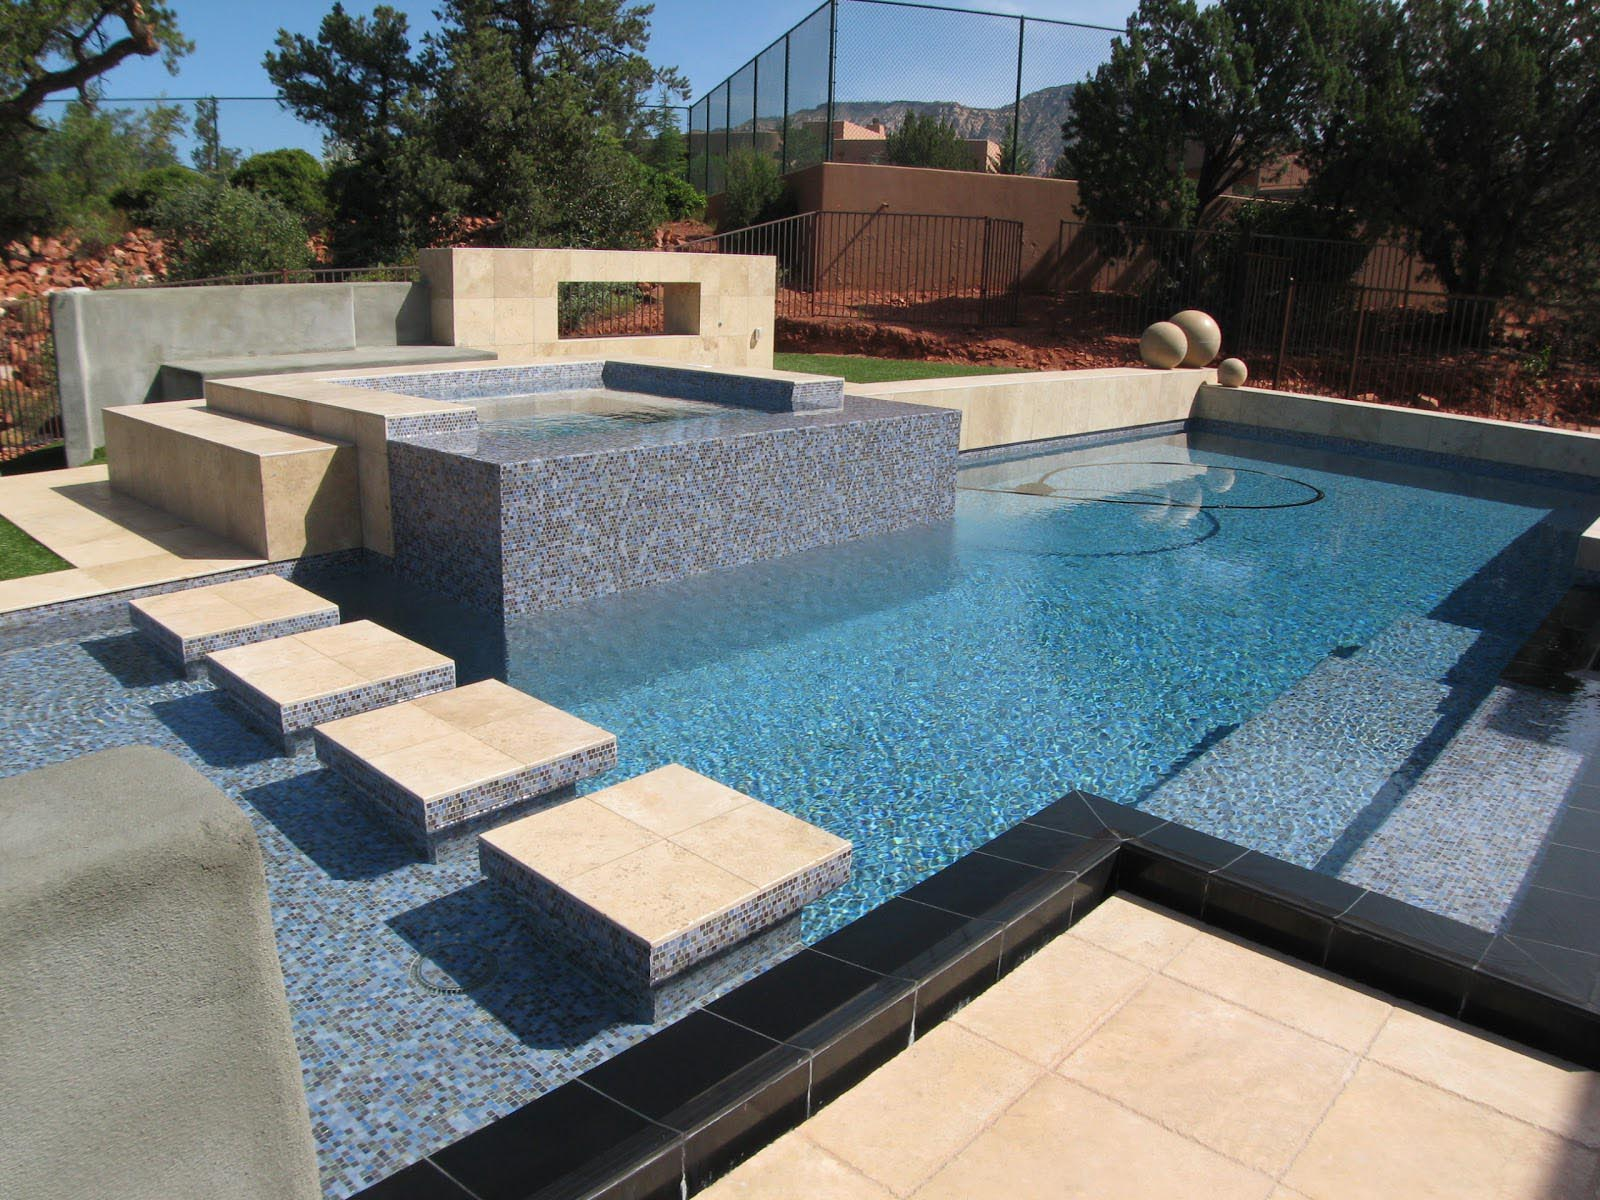 Swimming pool tile mortar backyard design ideas for Swimming pool tile pictures